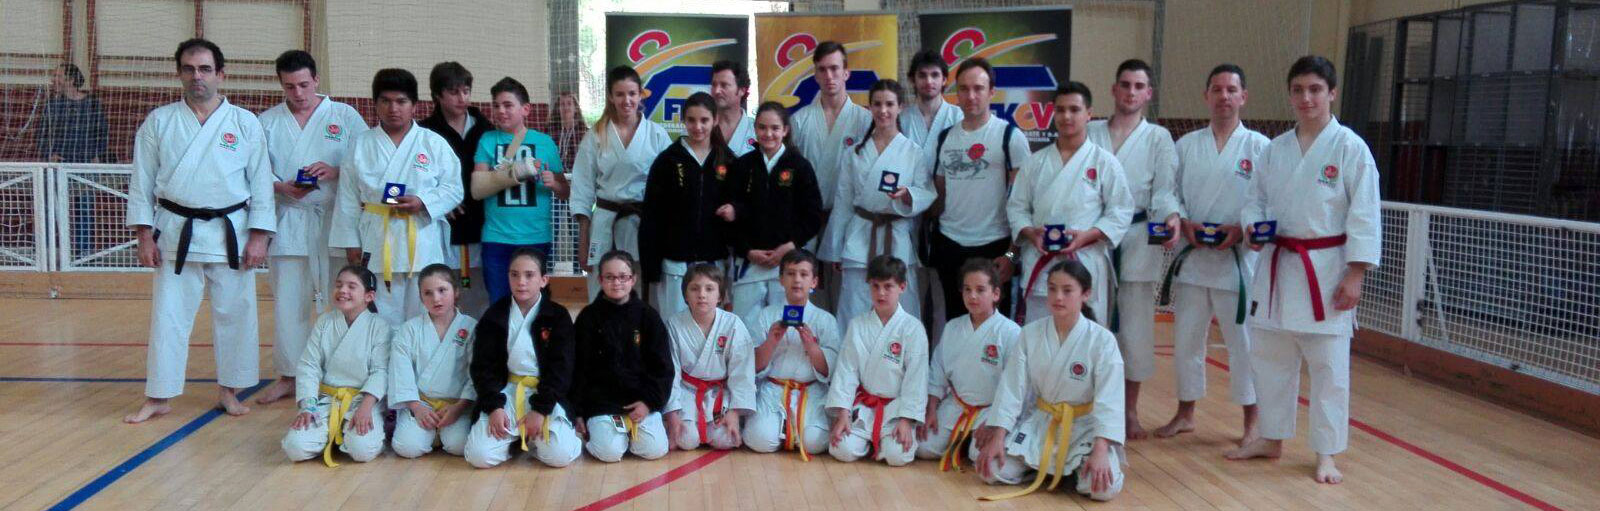 Club karate shotokan Sant Joan D´Alacant